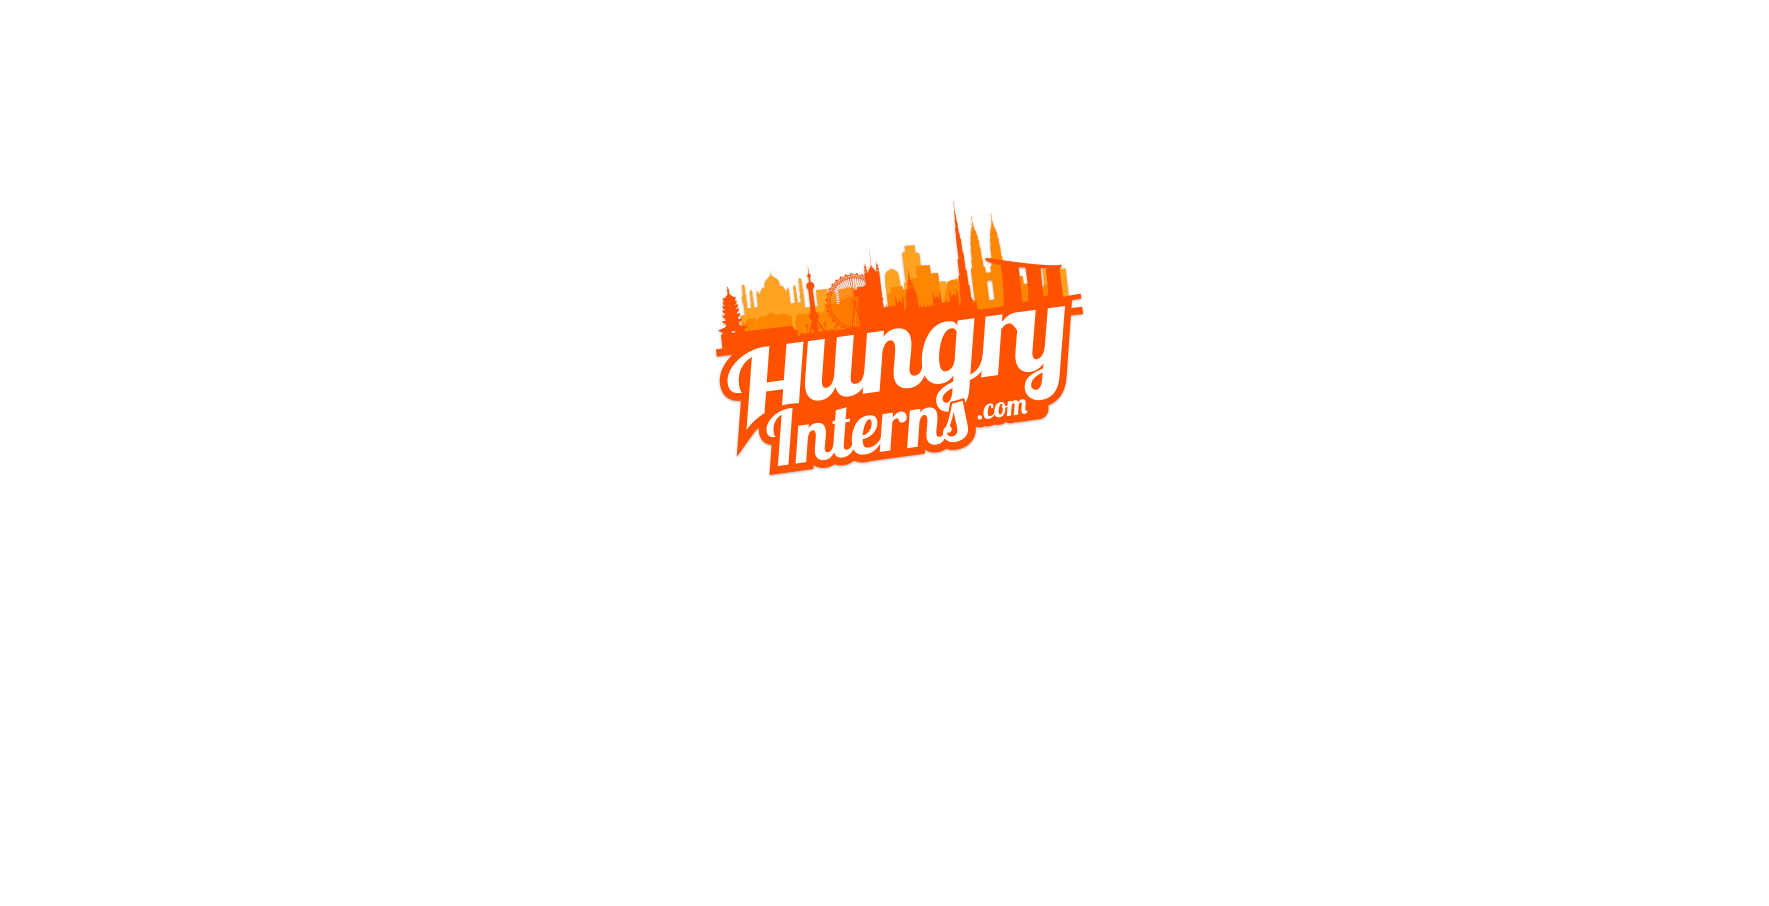 Hungry Interns